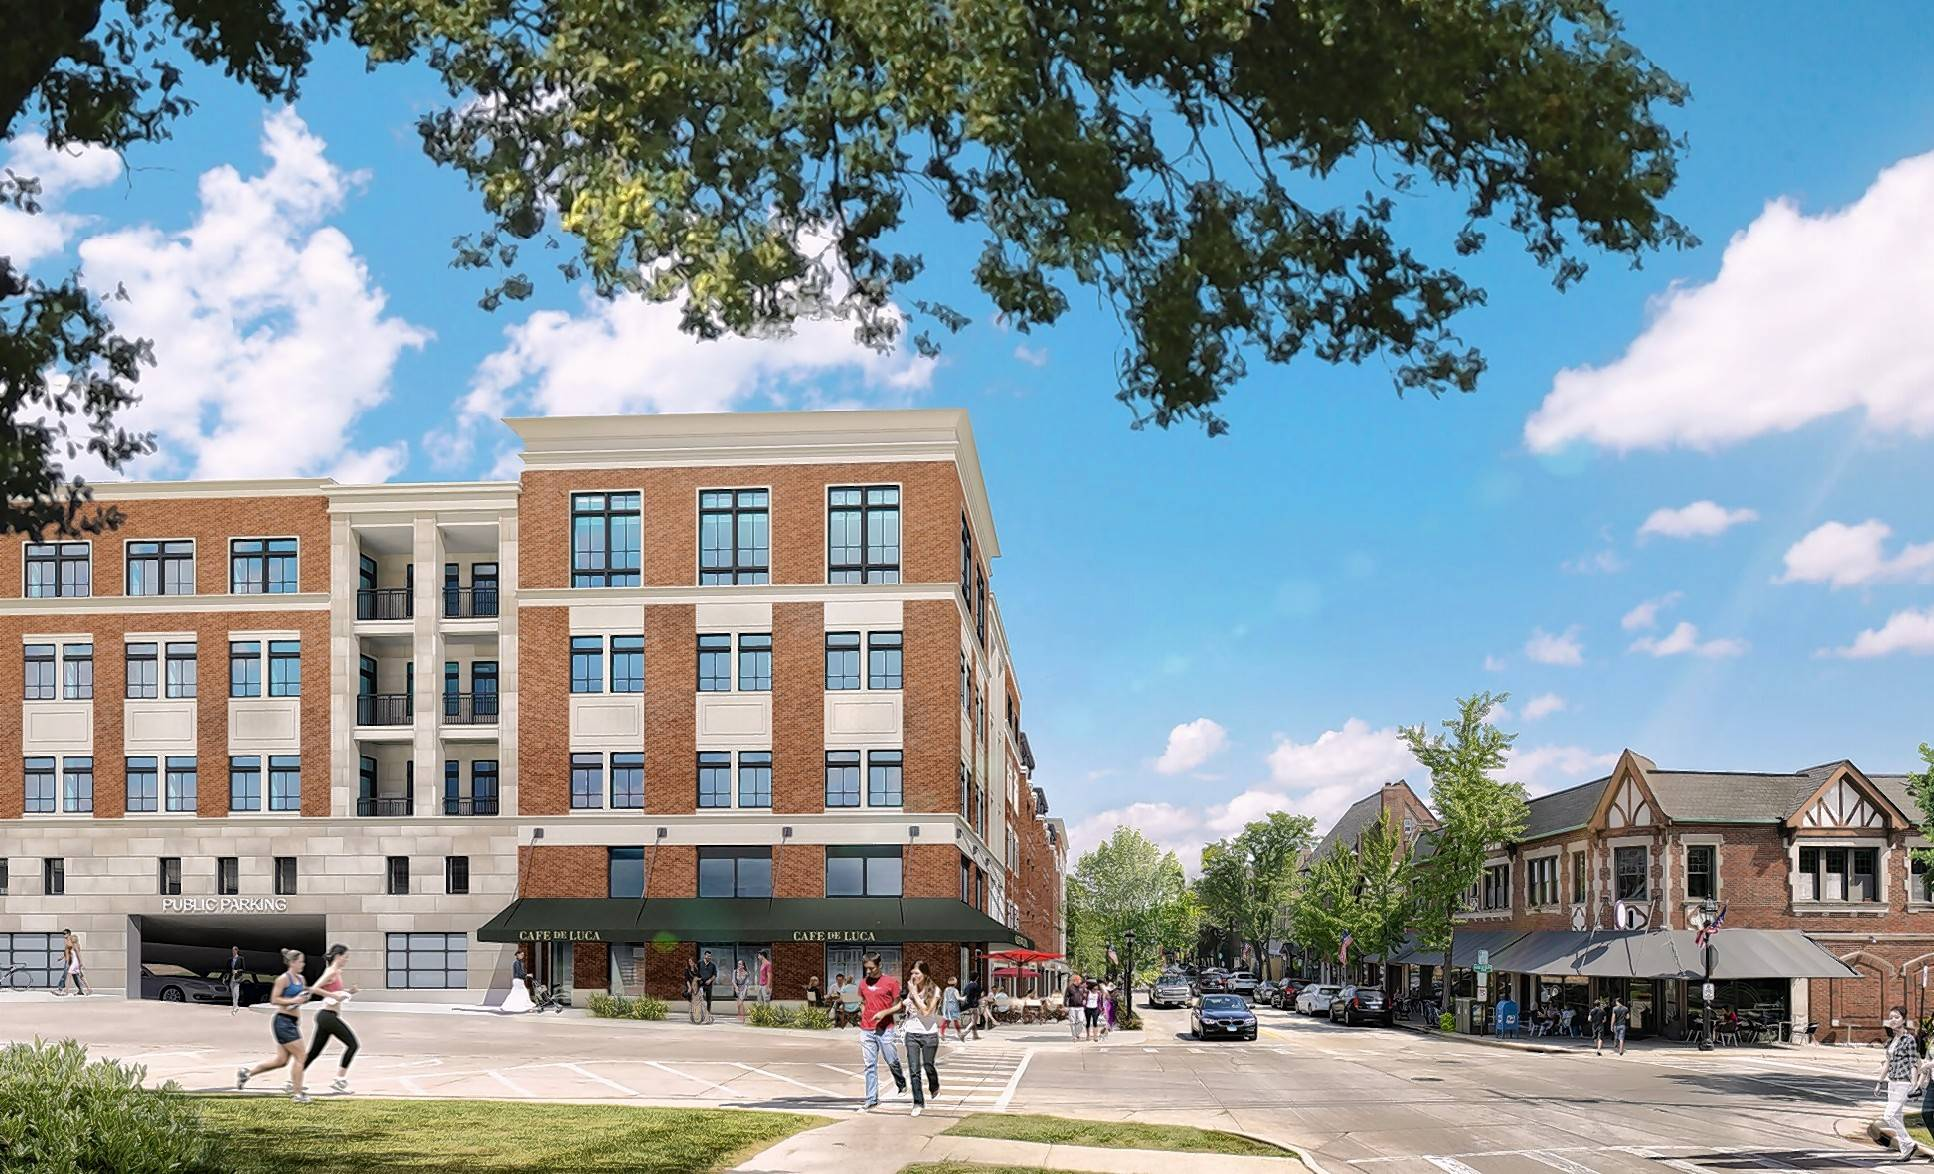 A proposed five-story apartment complex at the corner of Main Street and Hillside Avenue in Glen Ellyn is drawing criticism from some who say it would destroy the feel of the village's downtown.